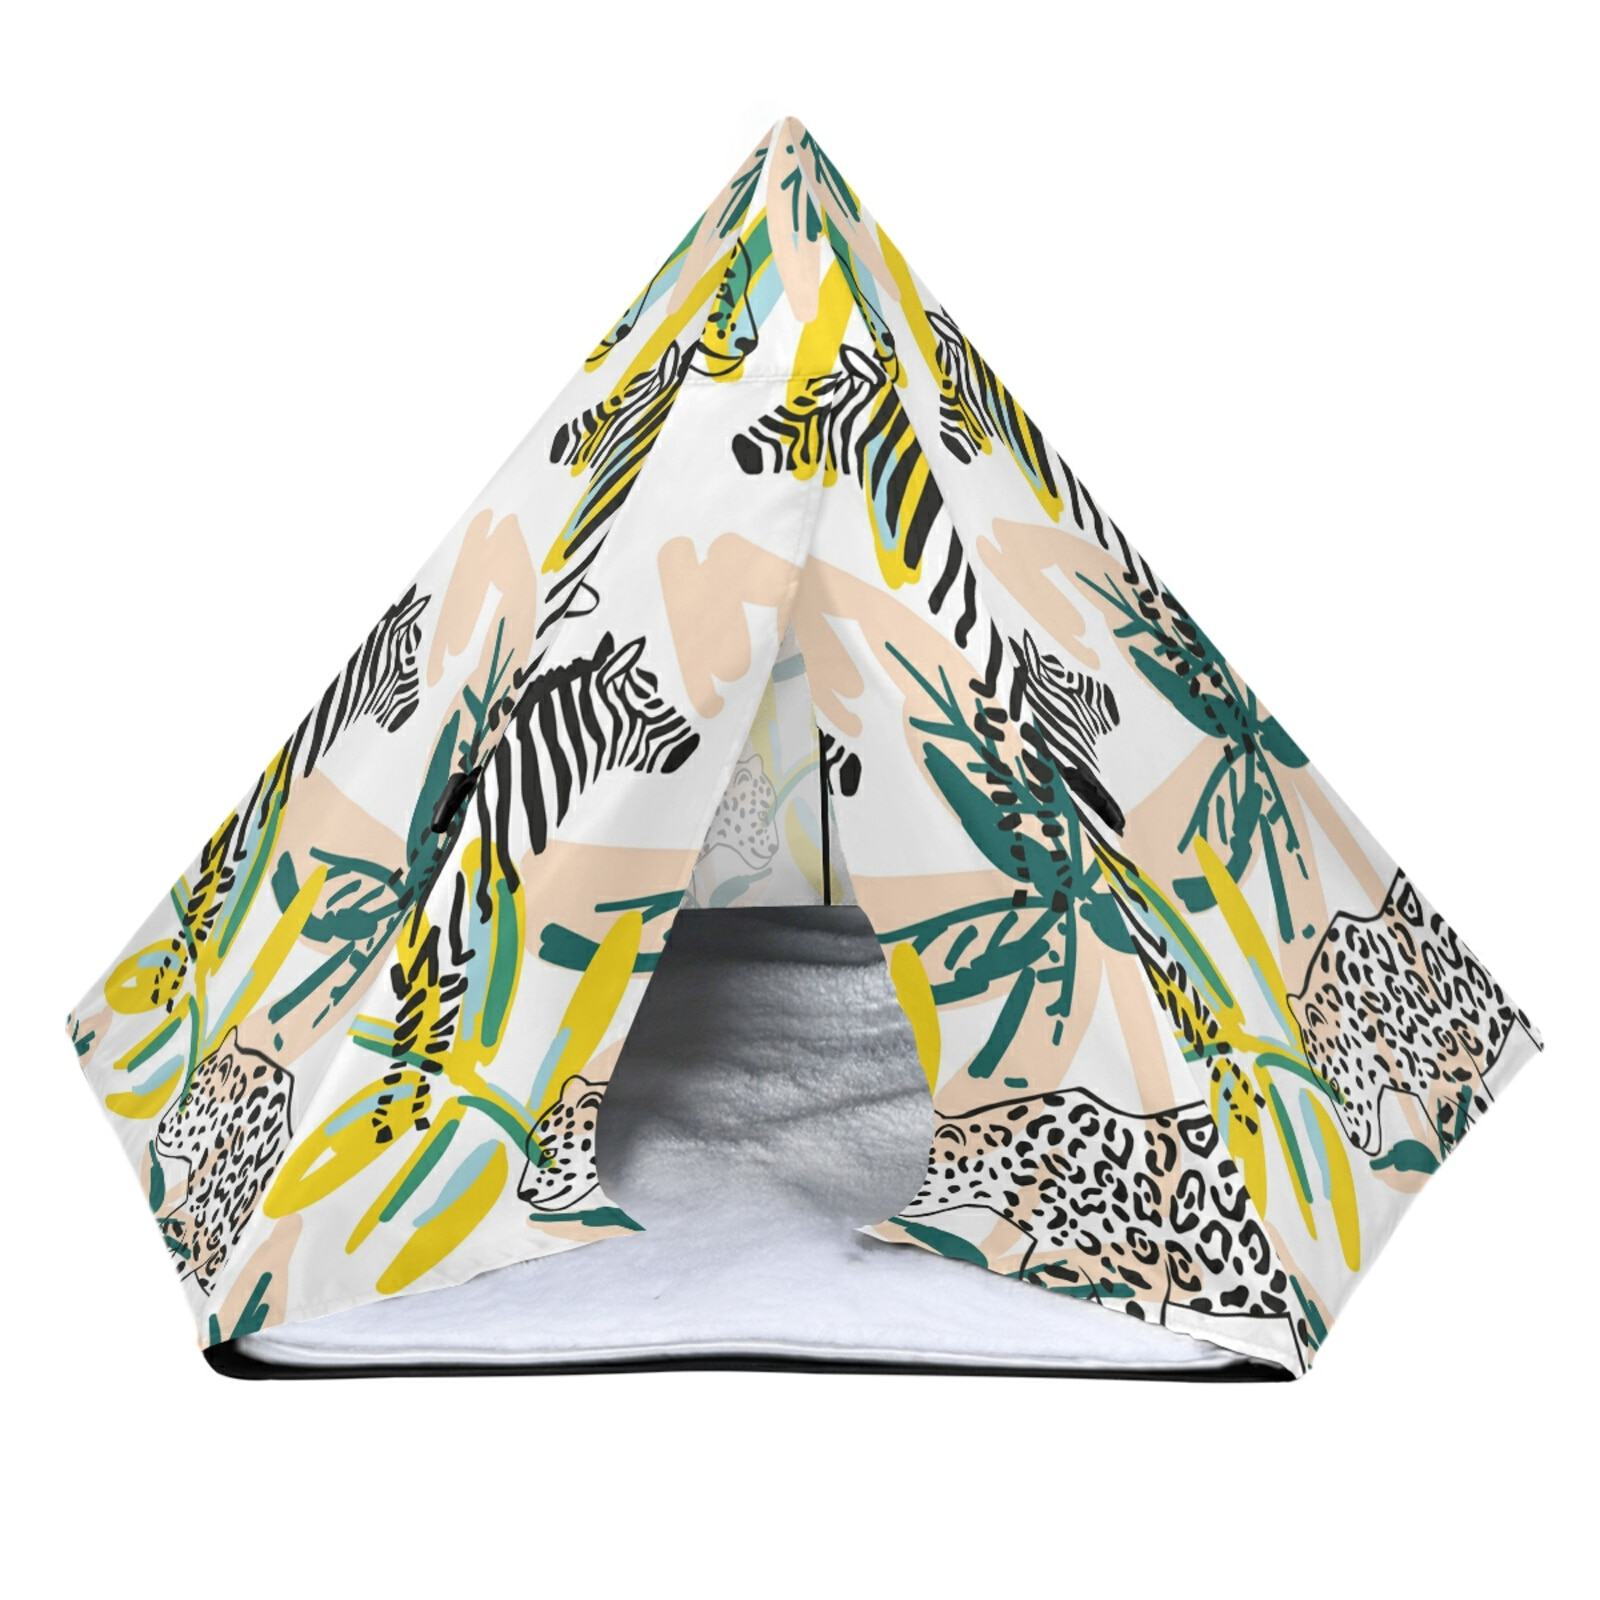 pet-house-tent-cat-bed-portable-teepee-with-thick-coral-velvet-cushion-comfortable-dog-puppy-outdoor-indoor-pet-tent-supplies